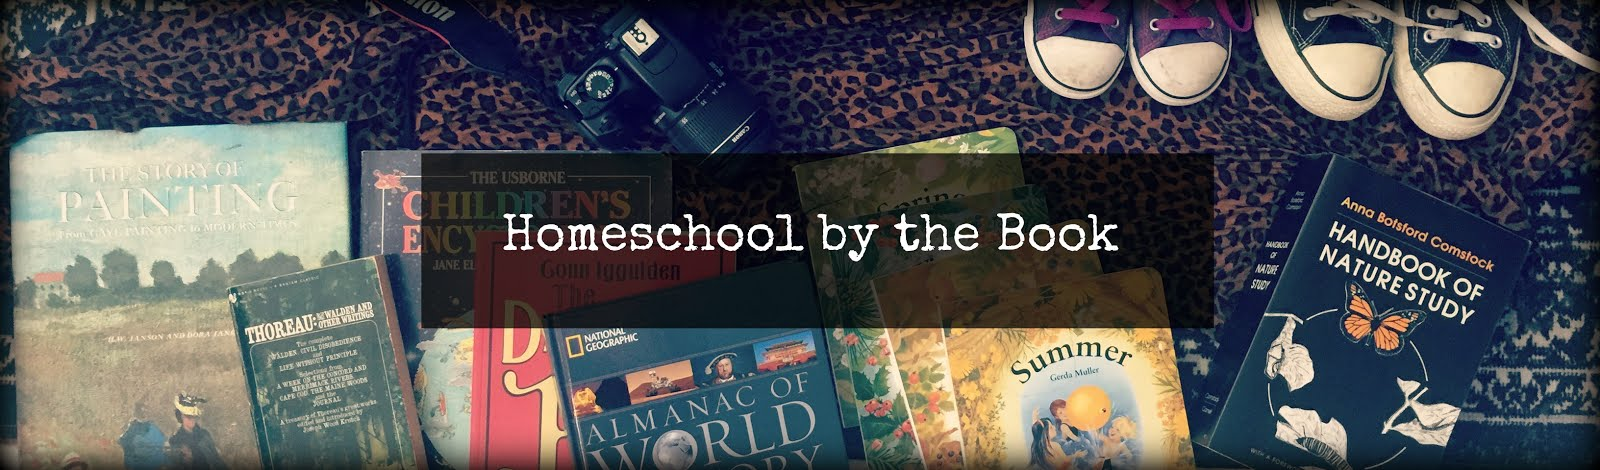 Homeschool by the Book